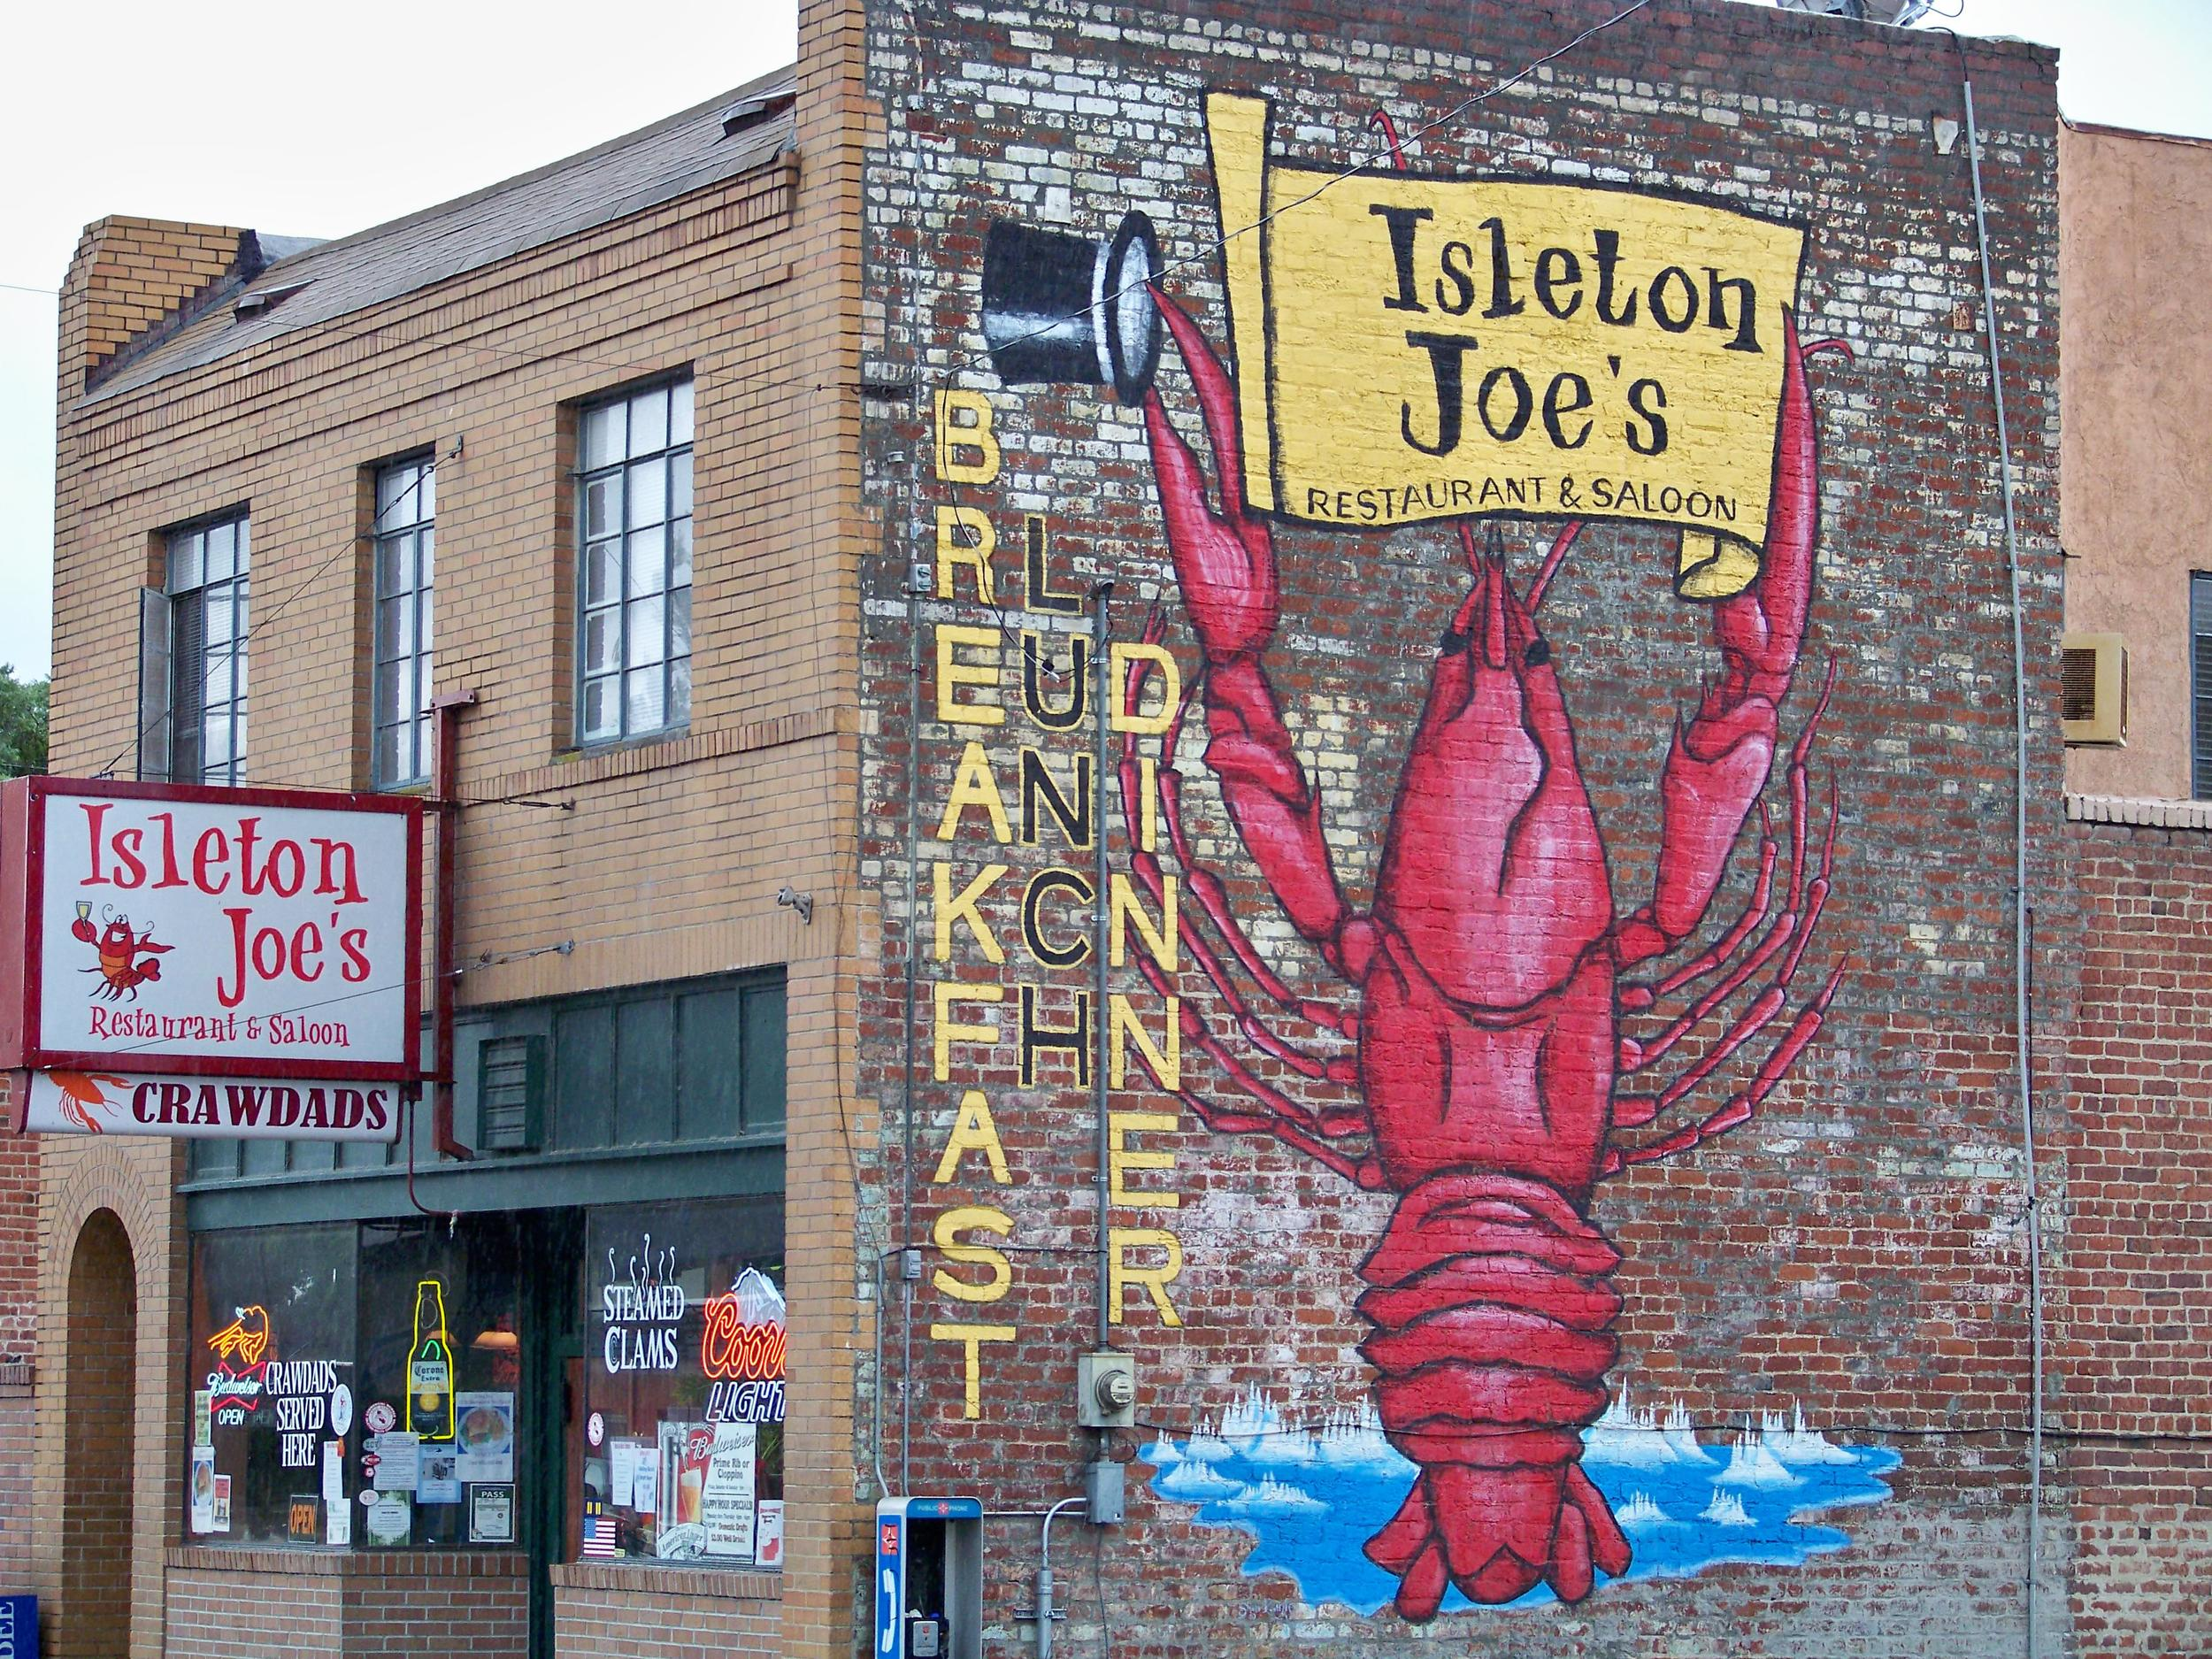 Isleton, home of the Crawdad Festival. At the Delta crawdad red is a well known successful pattern for a multitude of lures